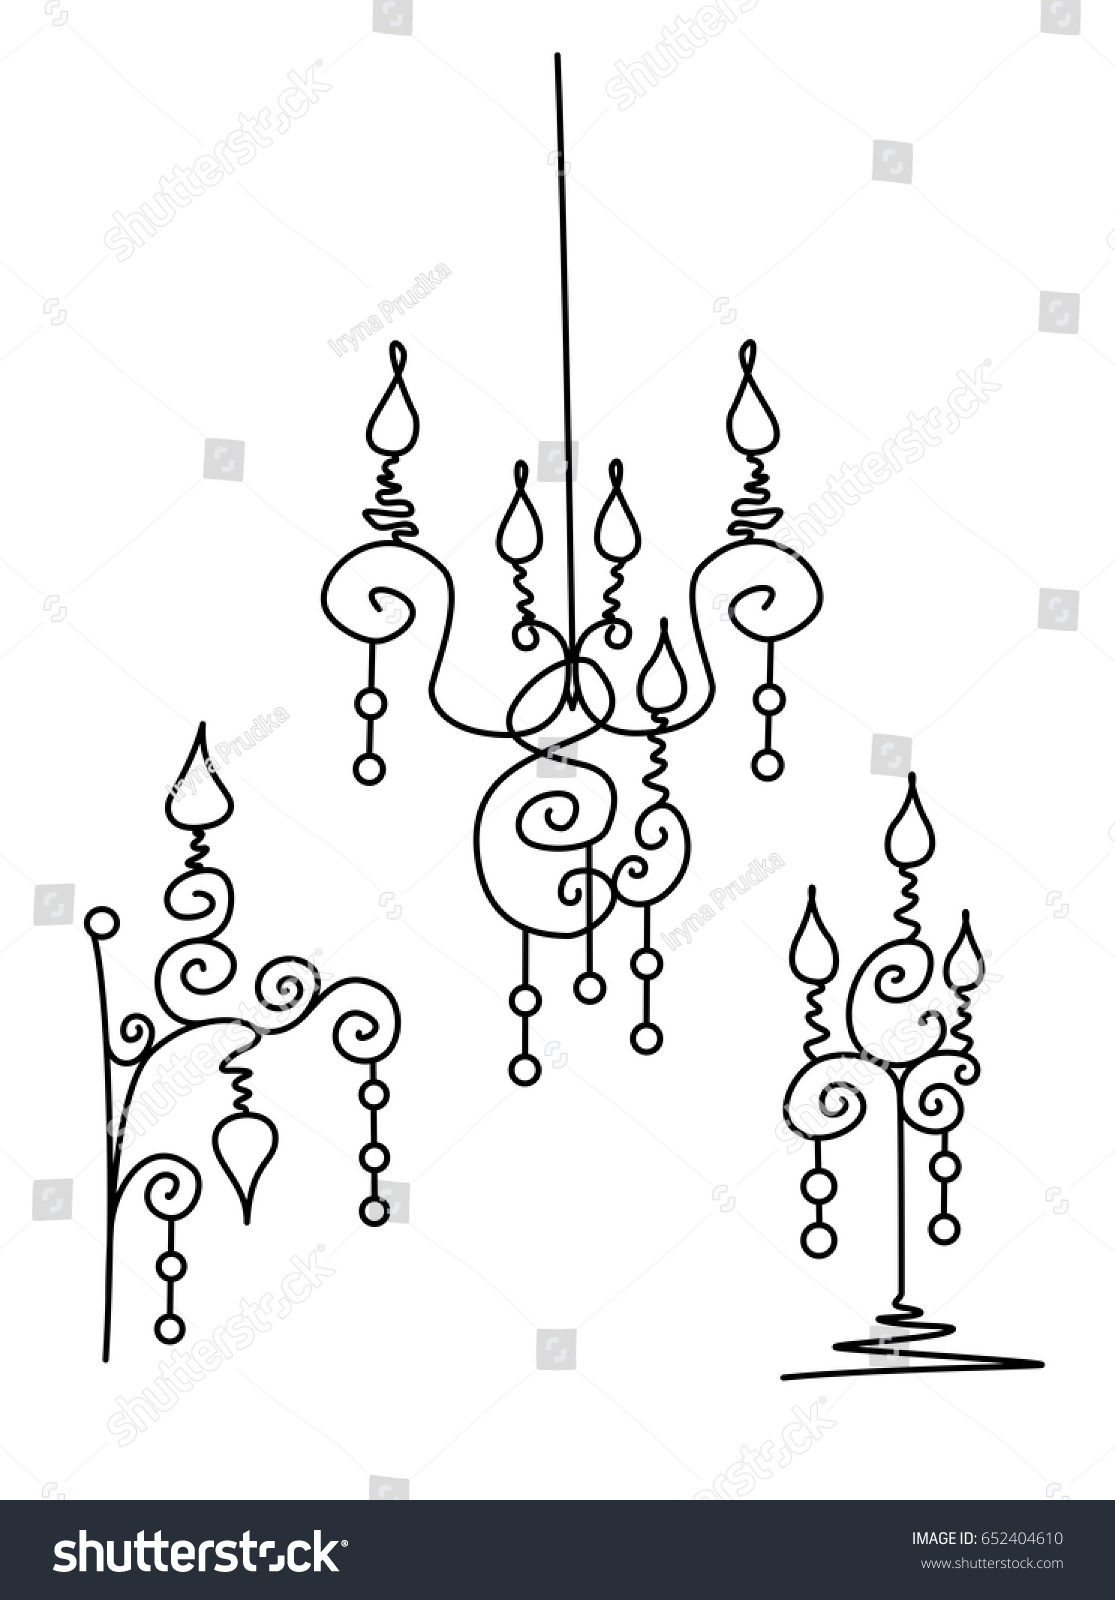 Vector Silhouette Of Hand Drawn Classy Chandelier Floor Lamp And Wall Set In Black